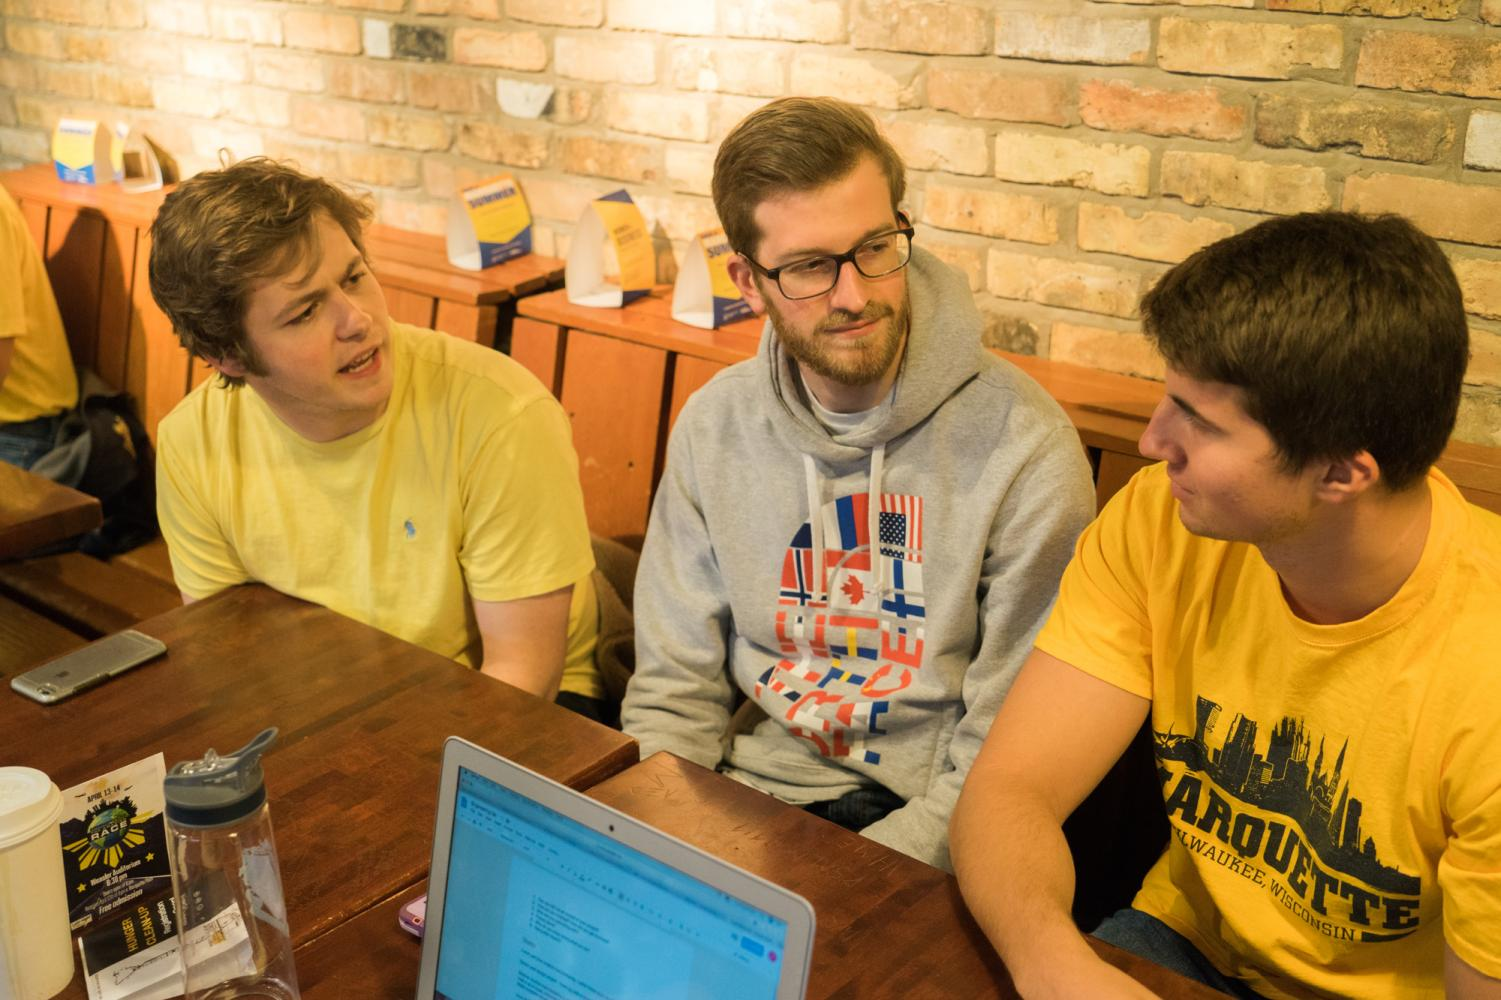 From left to right, engineering students TImothy Fair, Sam Goulet and Shaun Plunkett discuss their senior design project.